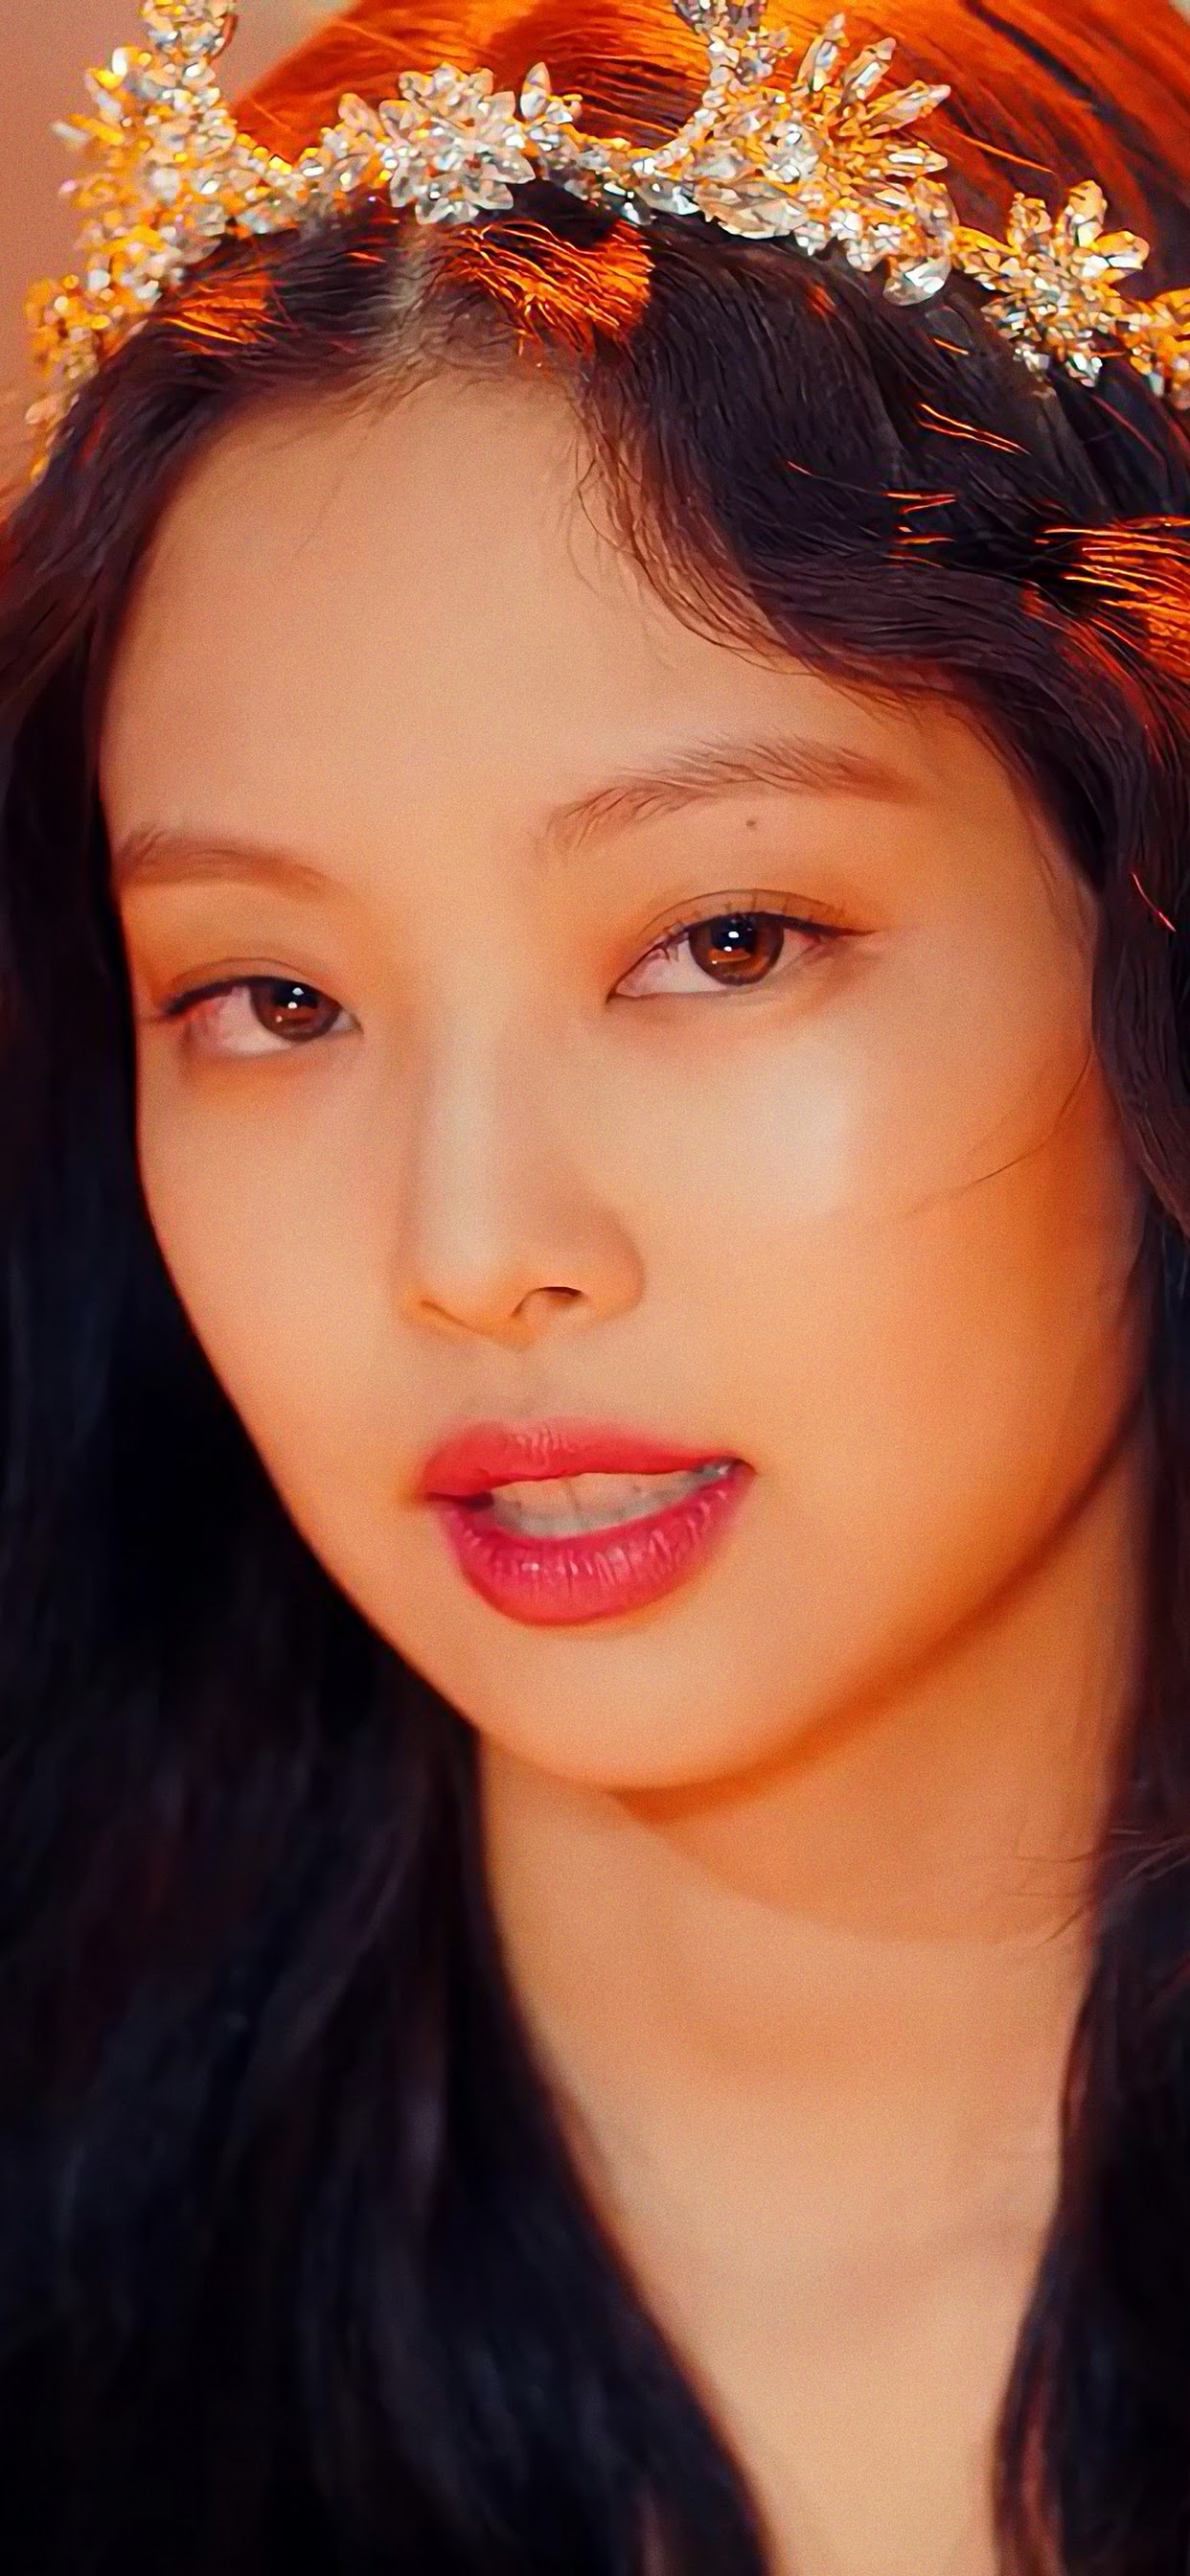 Blackpink Kill This Love Jennie 4k Wallpaper 11